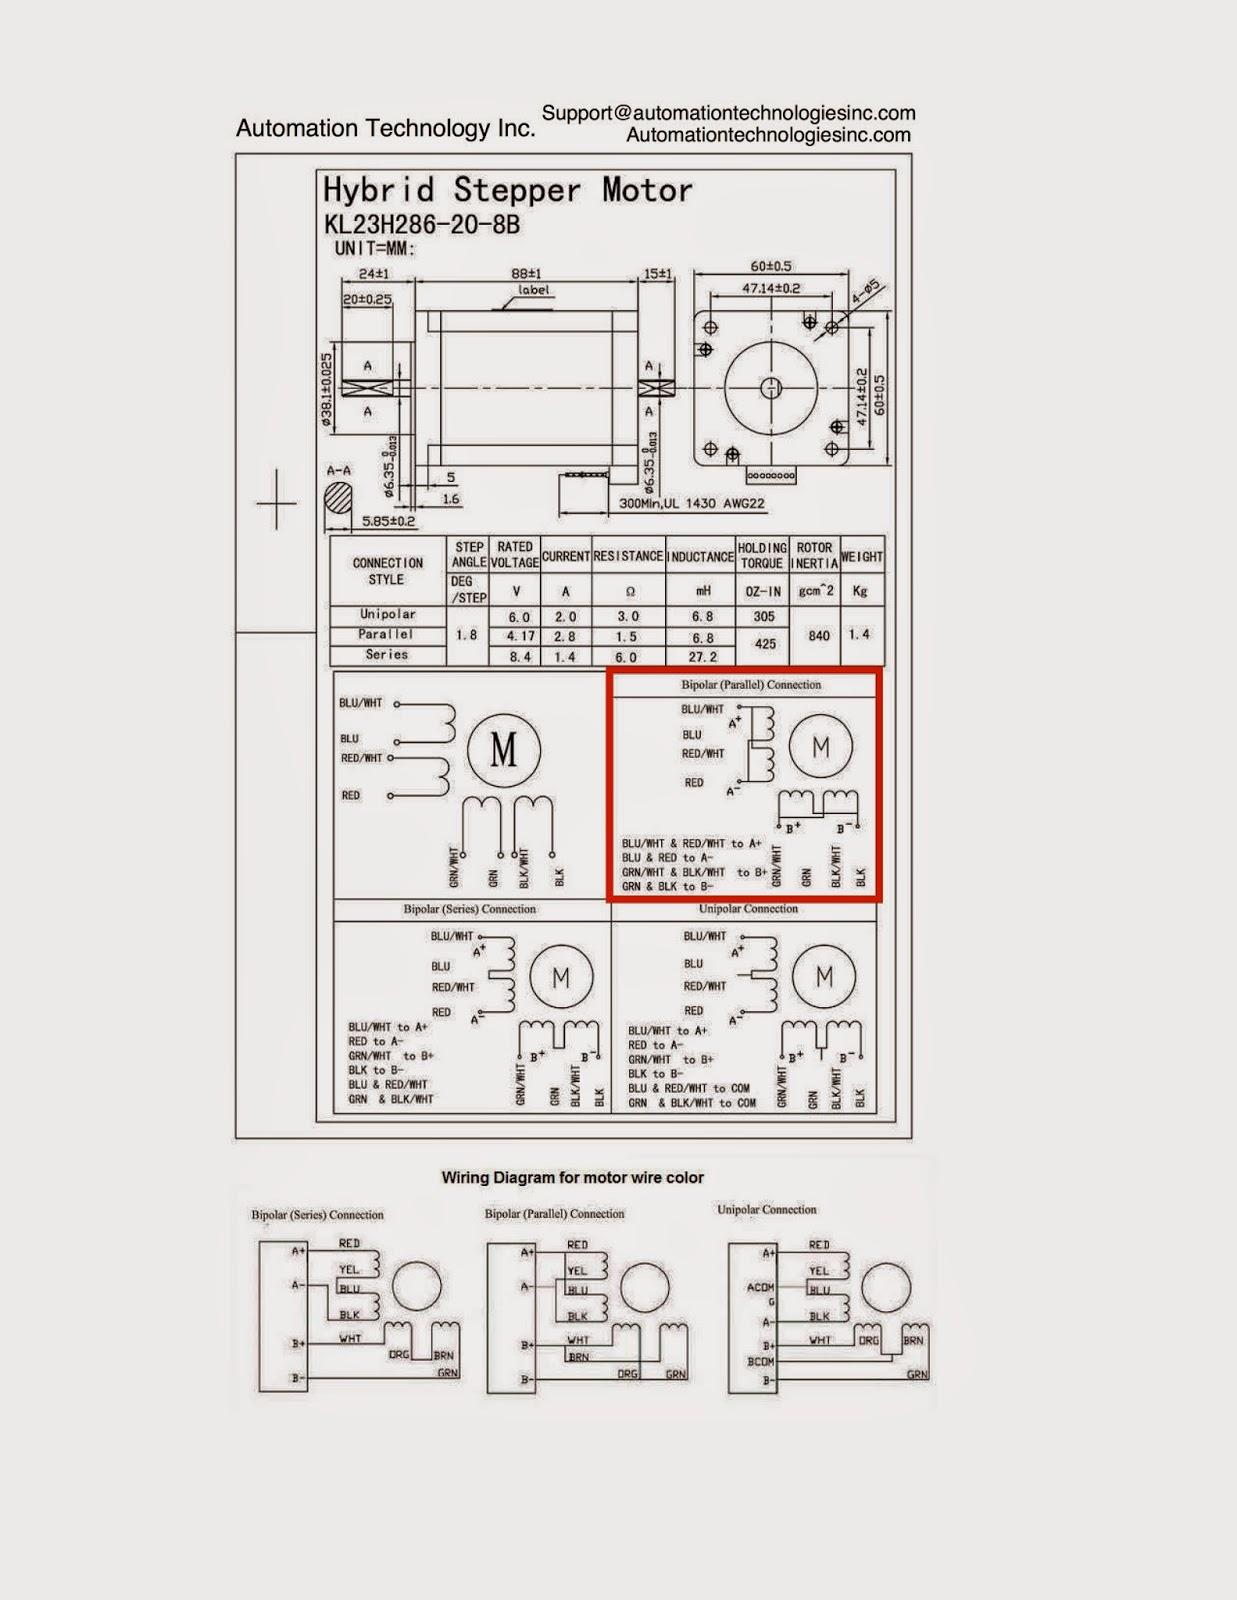 Lathe Motor Wiring Diagram : What have i gotten myself into cnc lathe conversion part